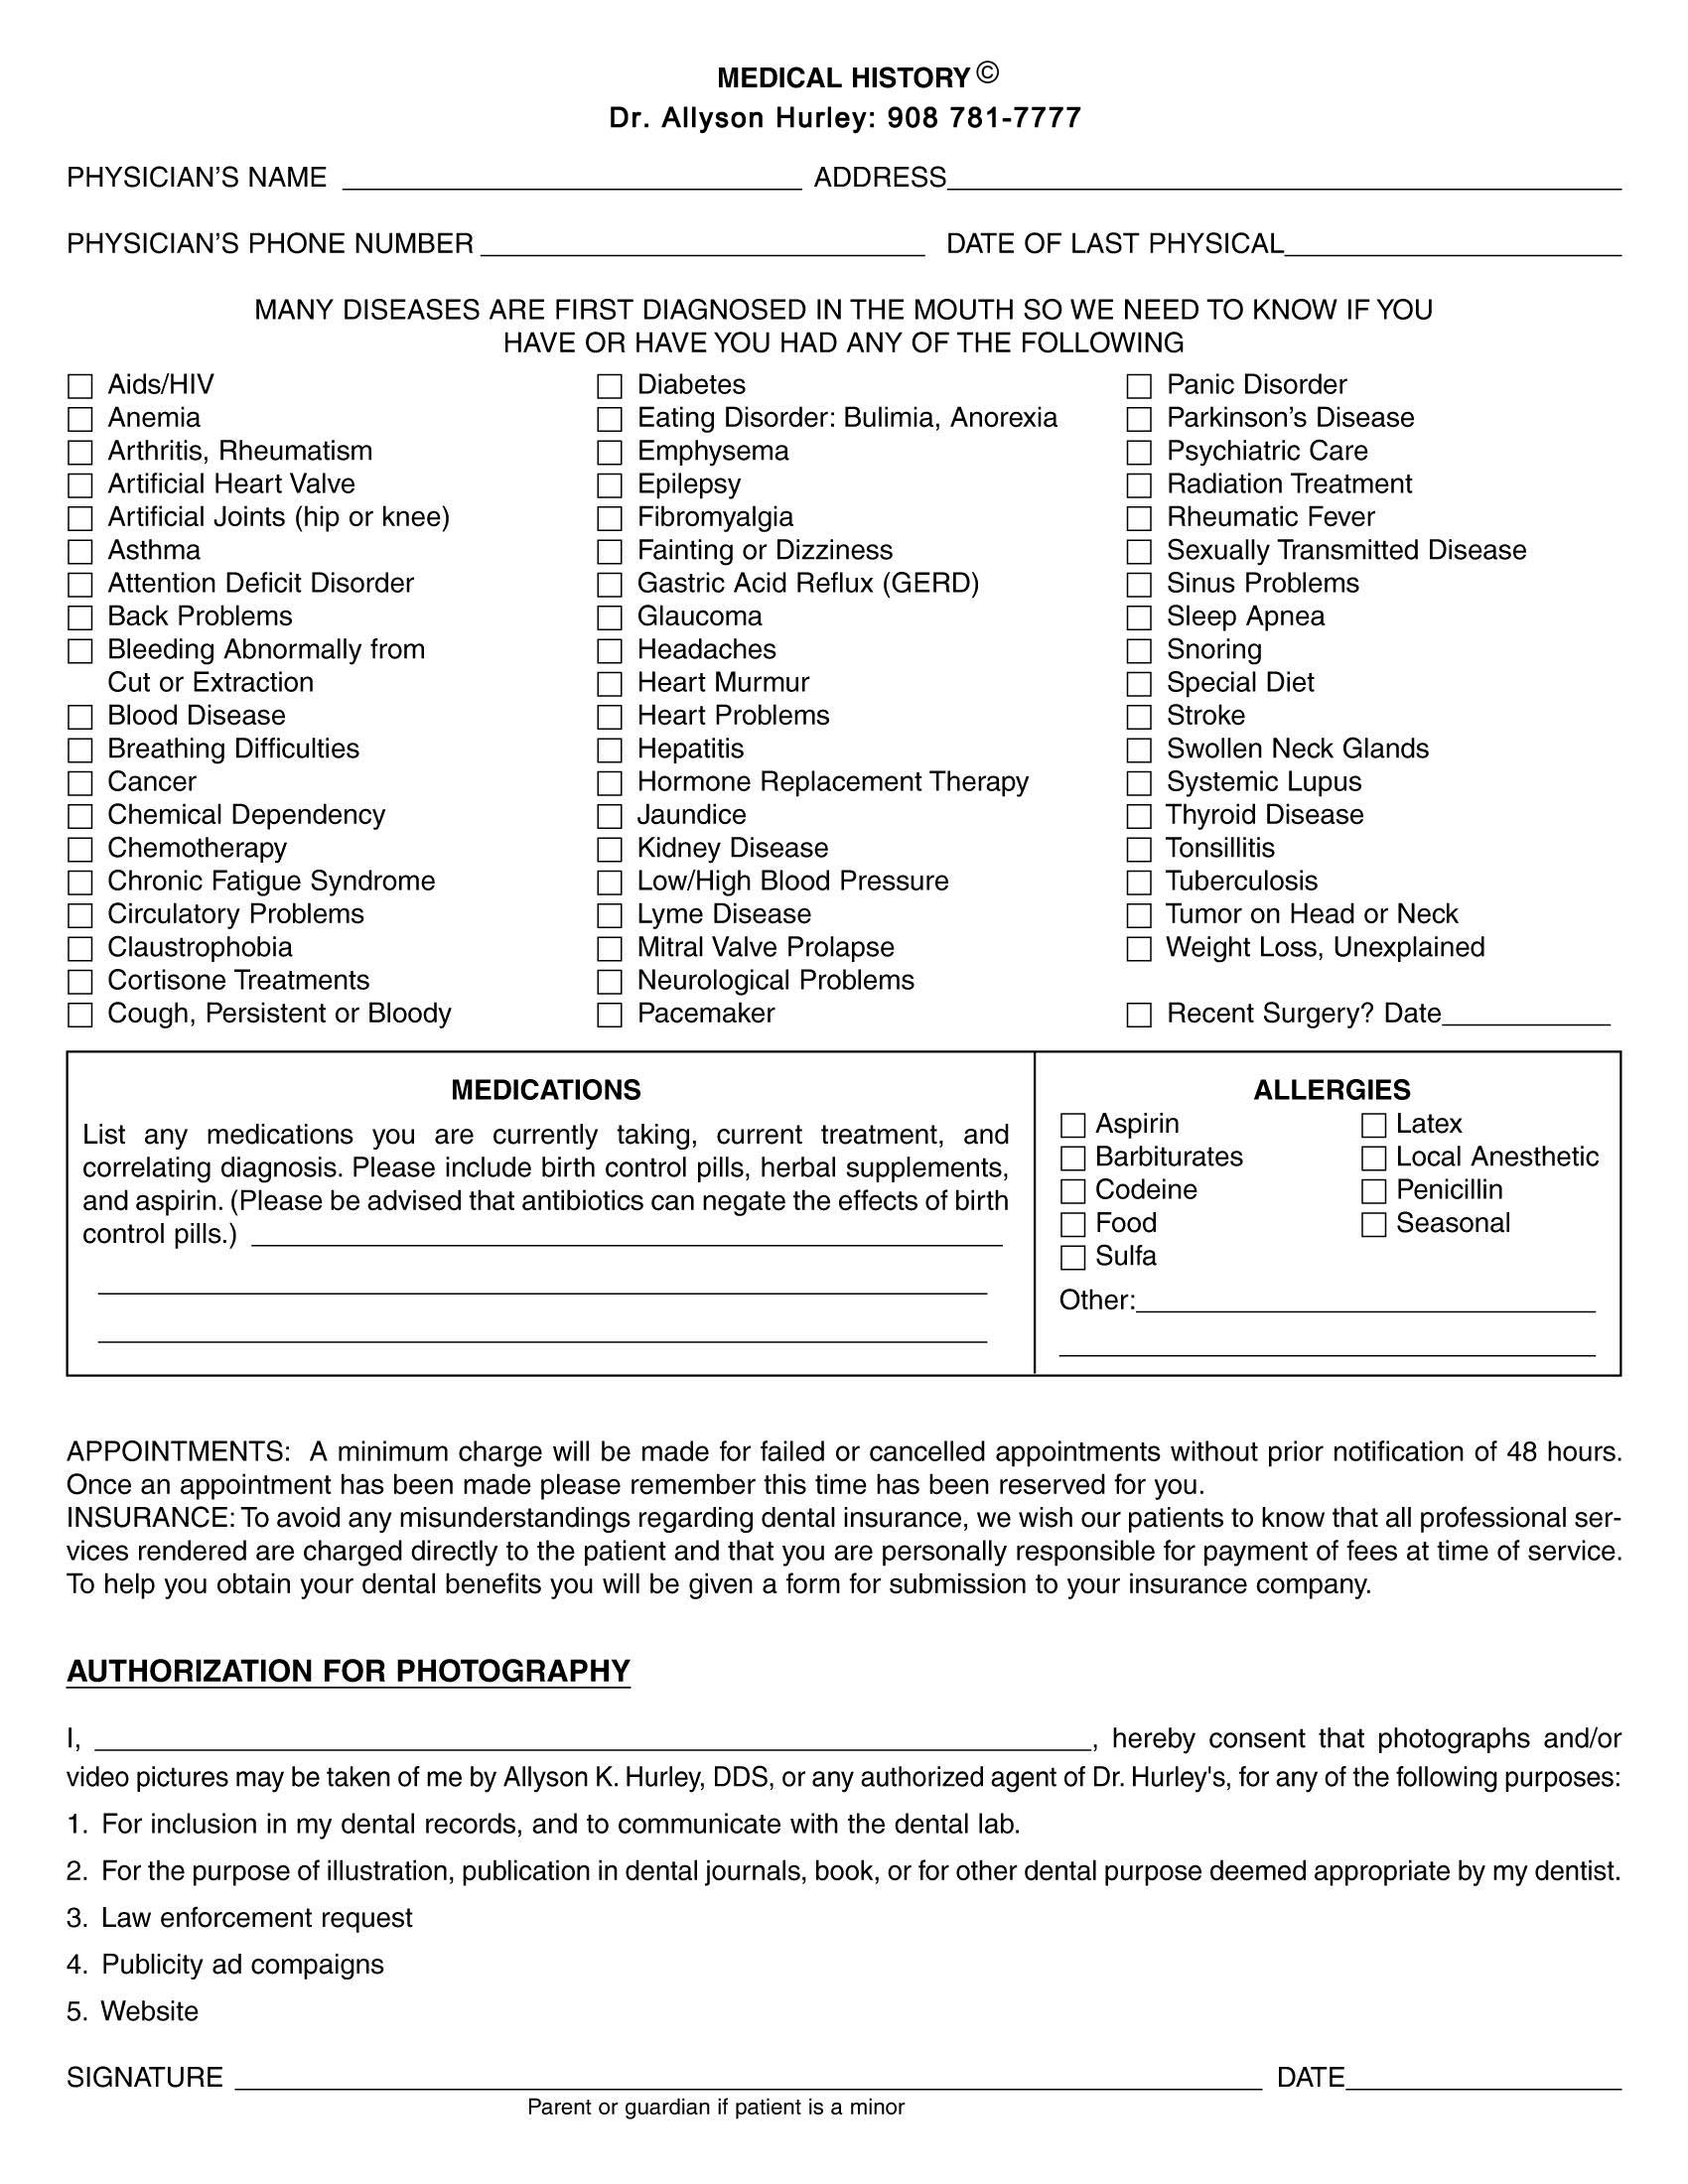 10 23 2018 patient info medical history form page 2 jpg 1700 2200